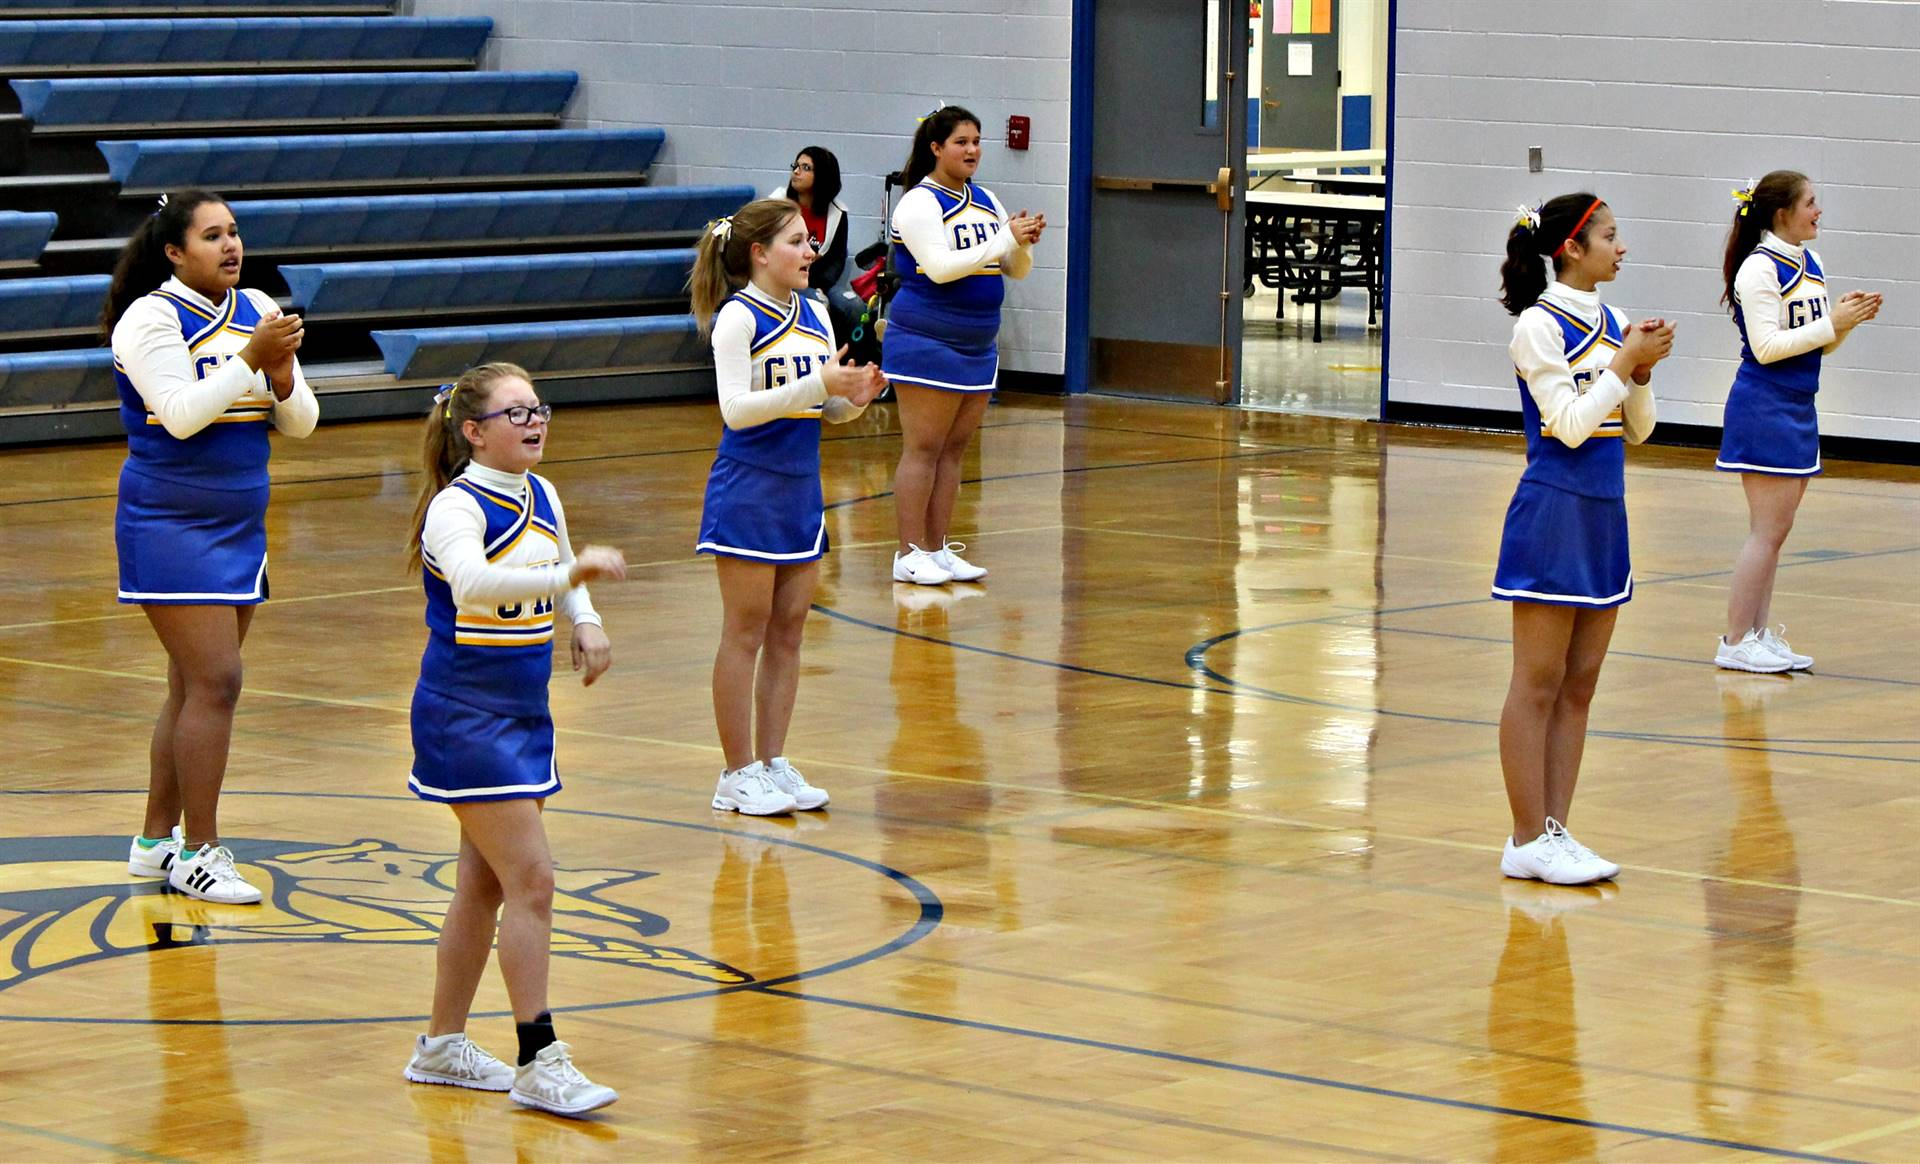 Junior high cheerleaders cheering at a basketball game